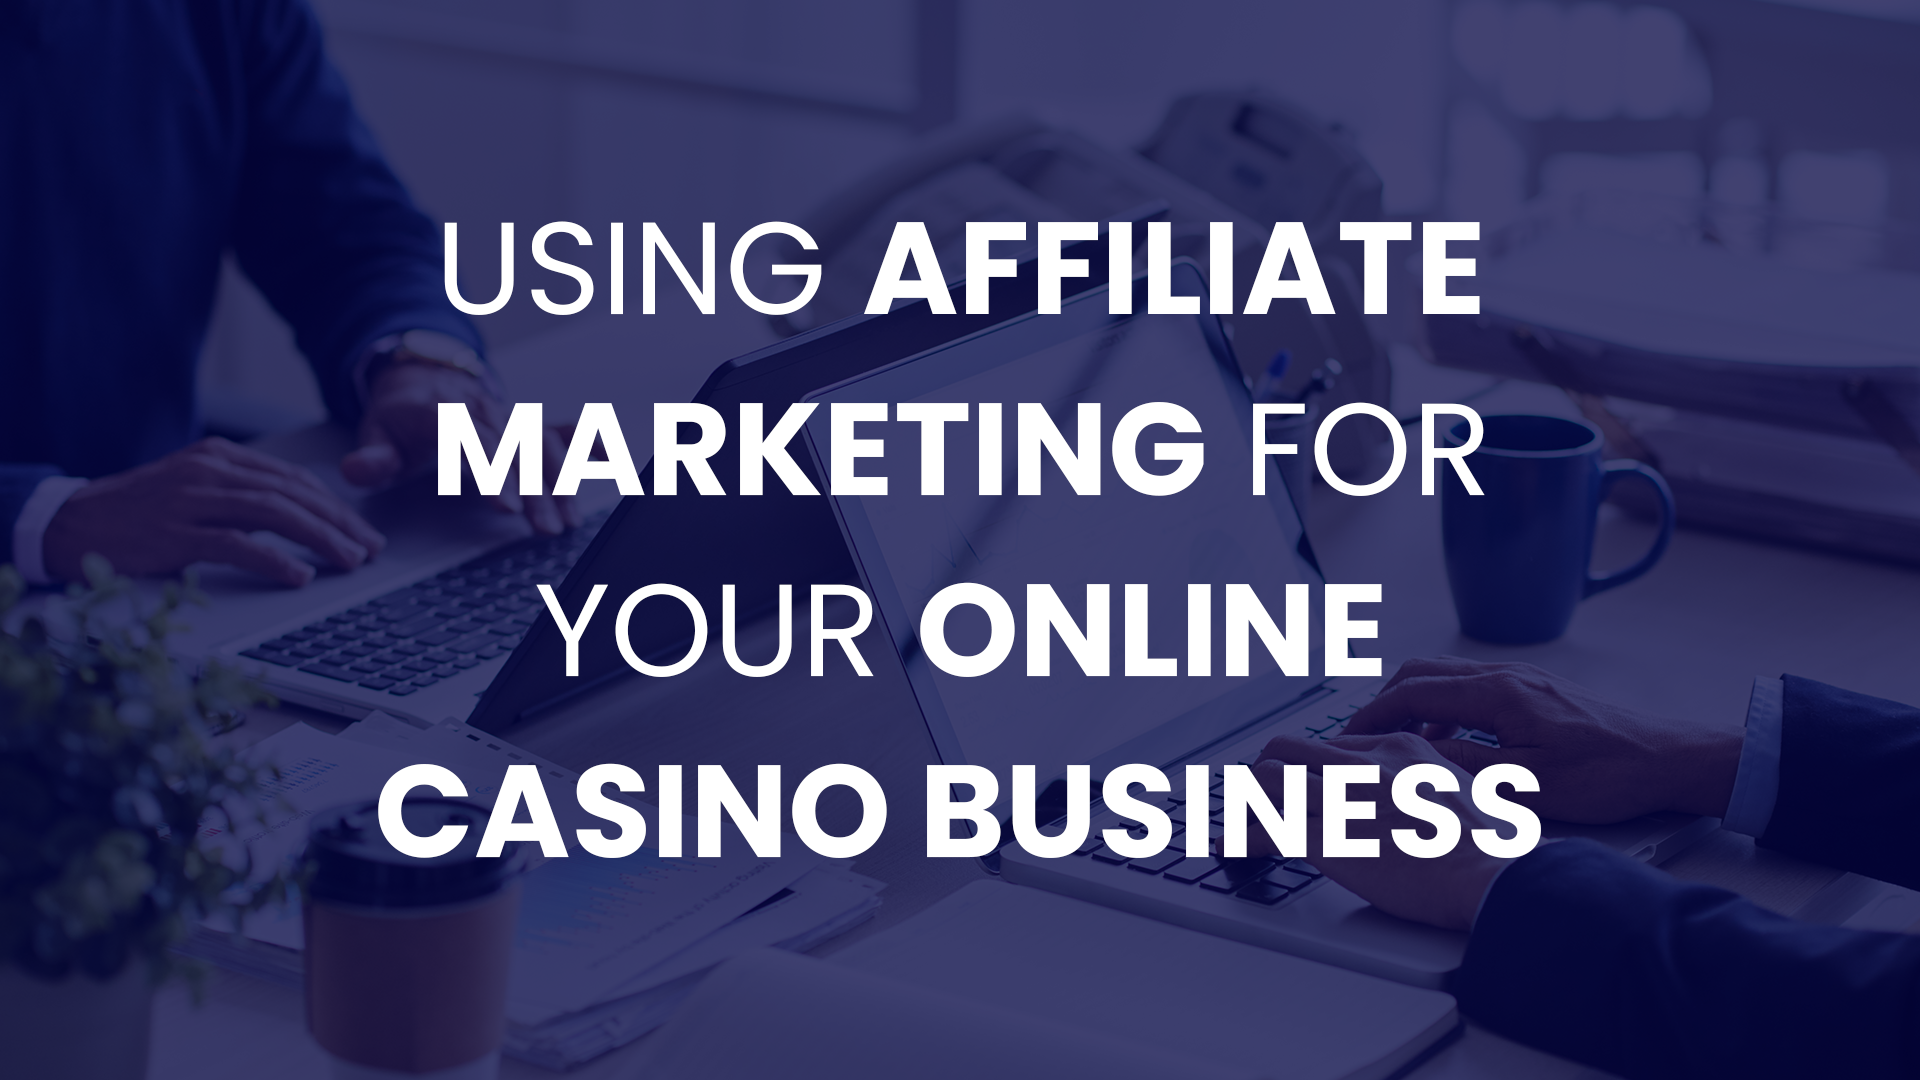 Using Affiliate Marketing for Your Online Casino Business